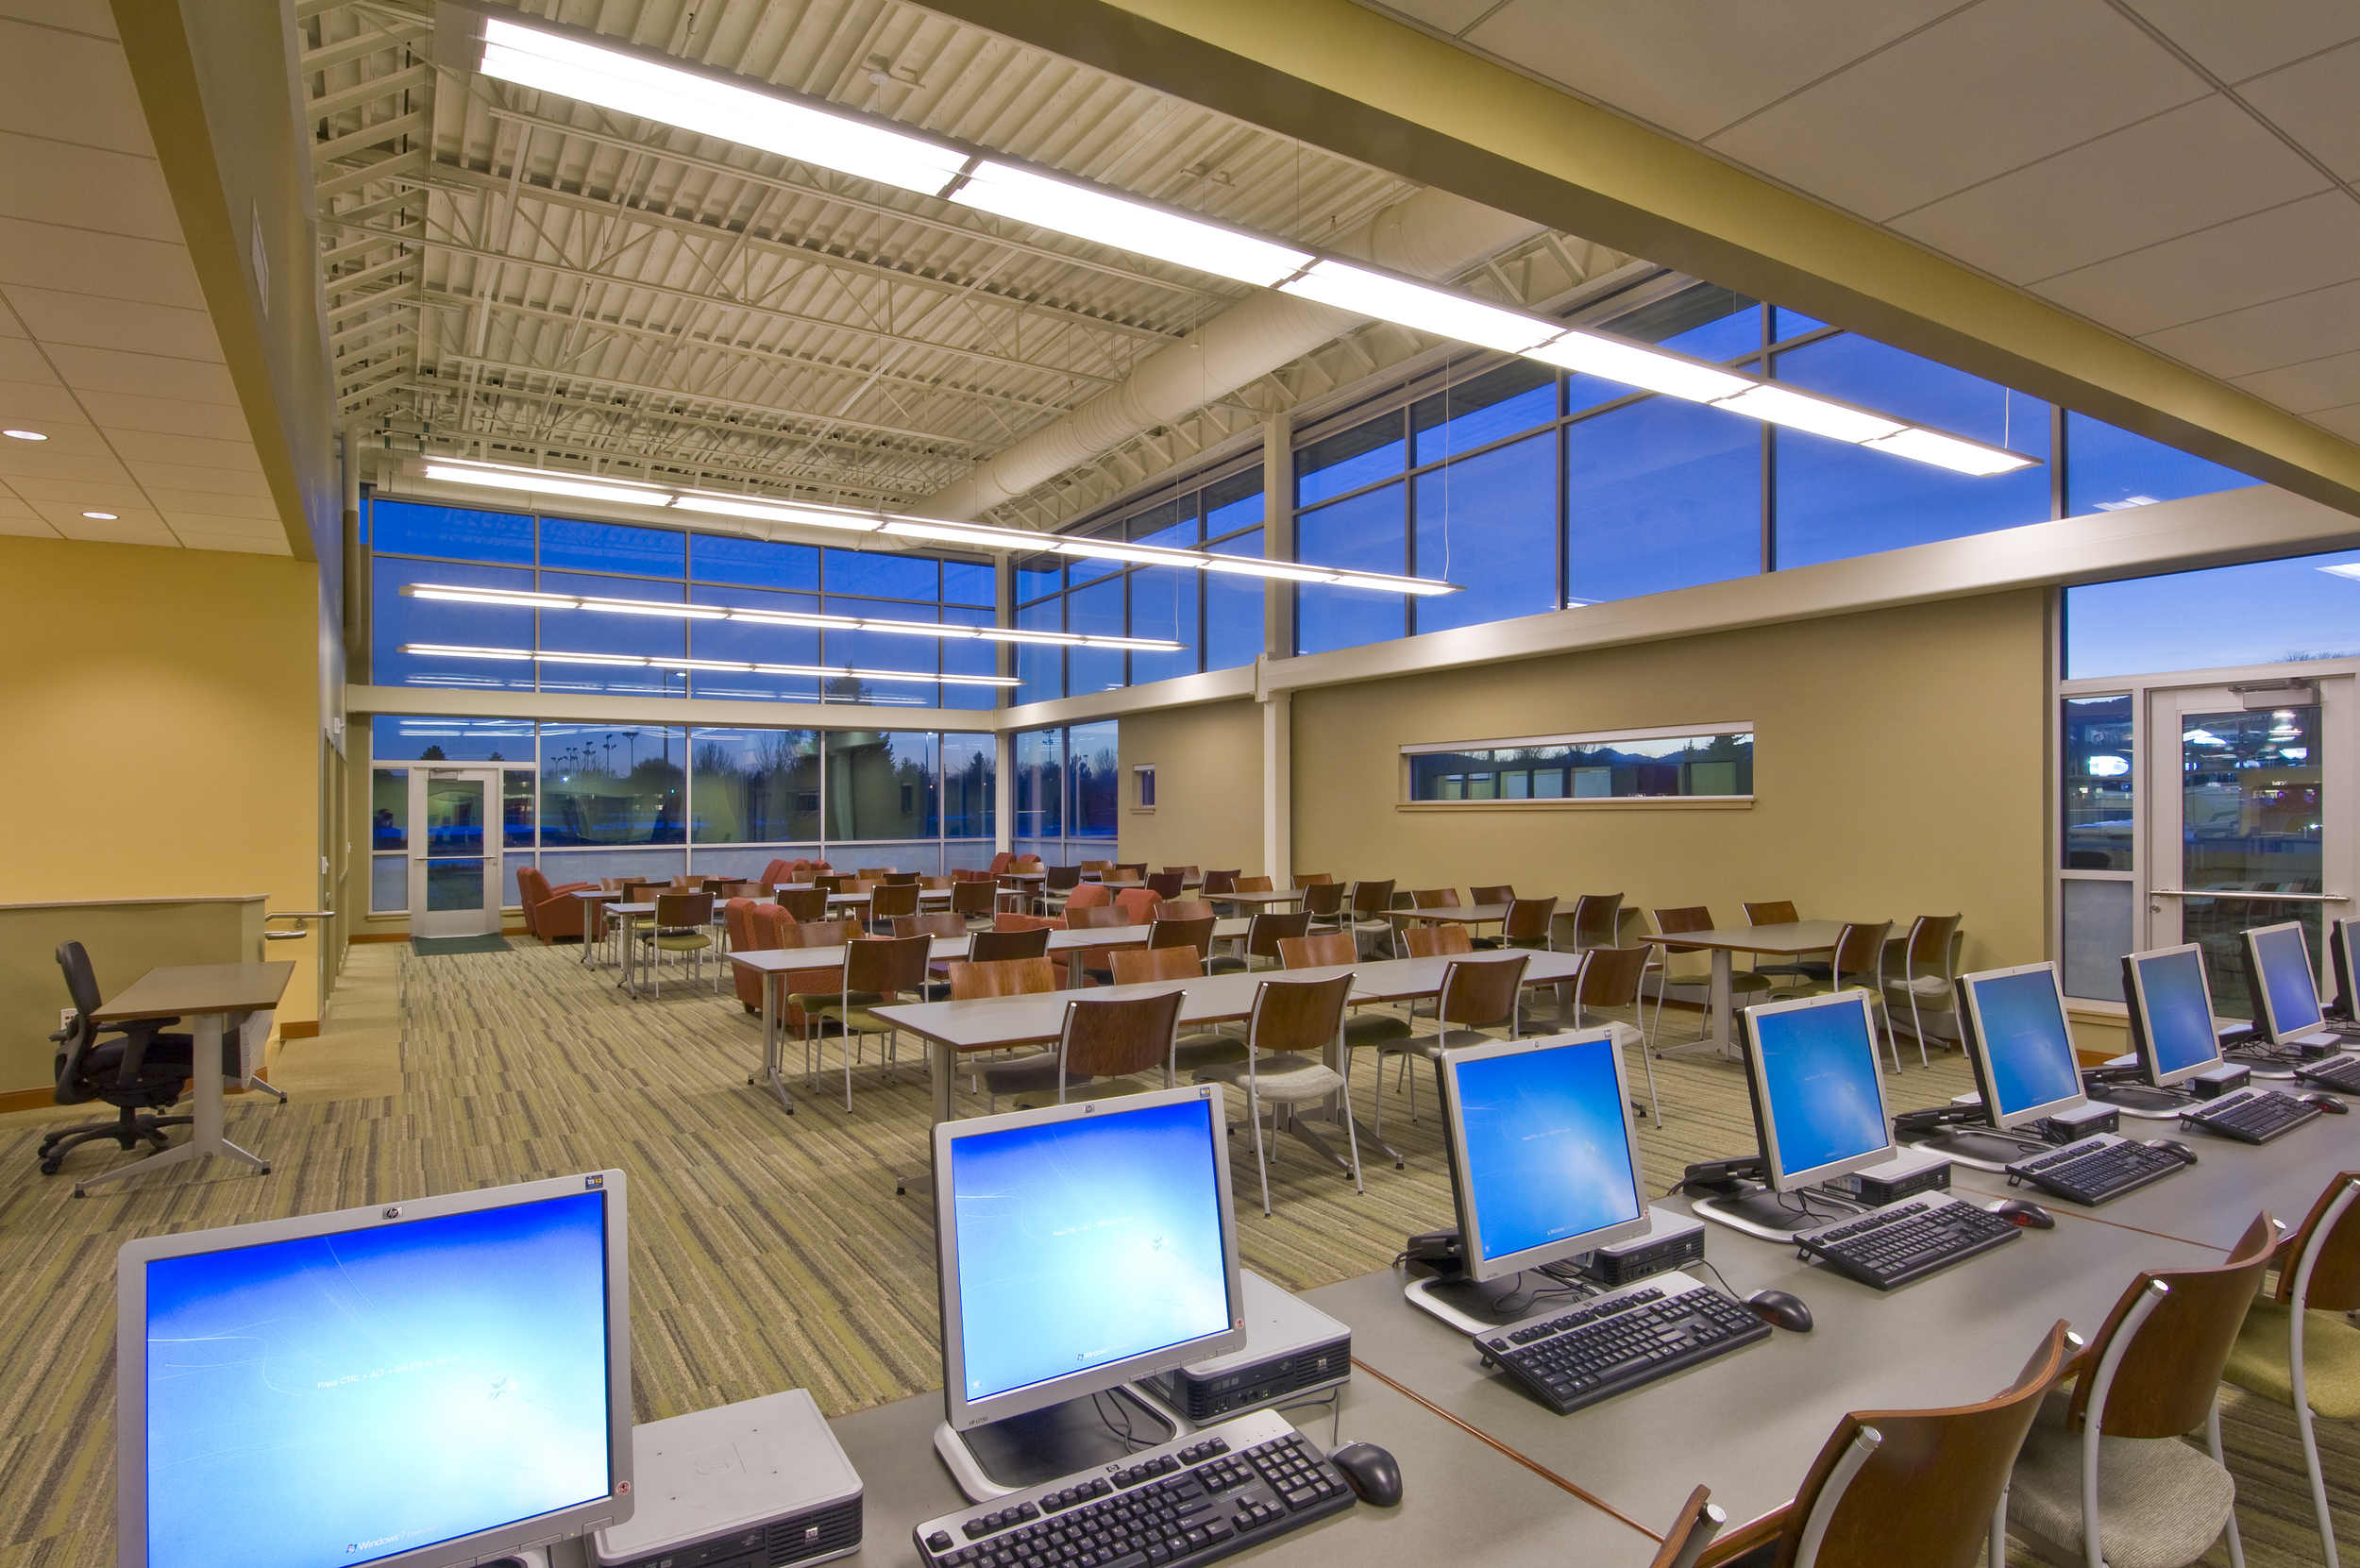 Classroom and laboratory design are just a few of the architectural projects Aller Architects PC in Fort Collins offers.